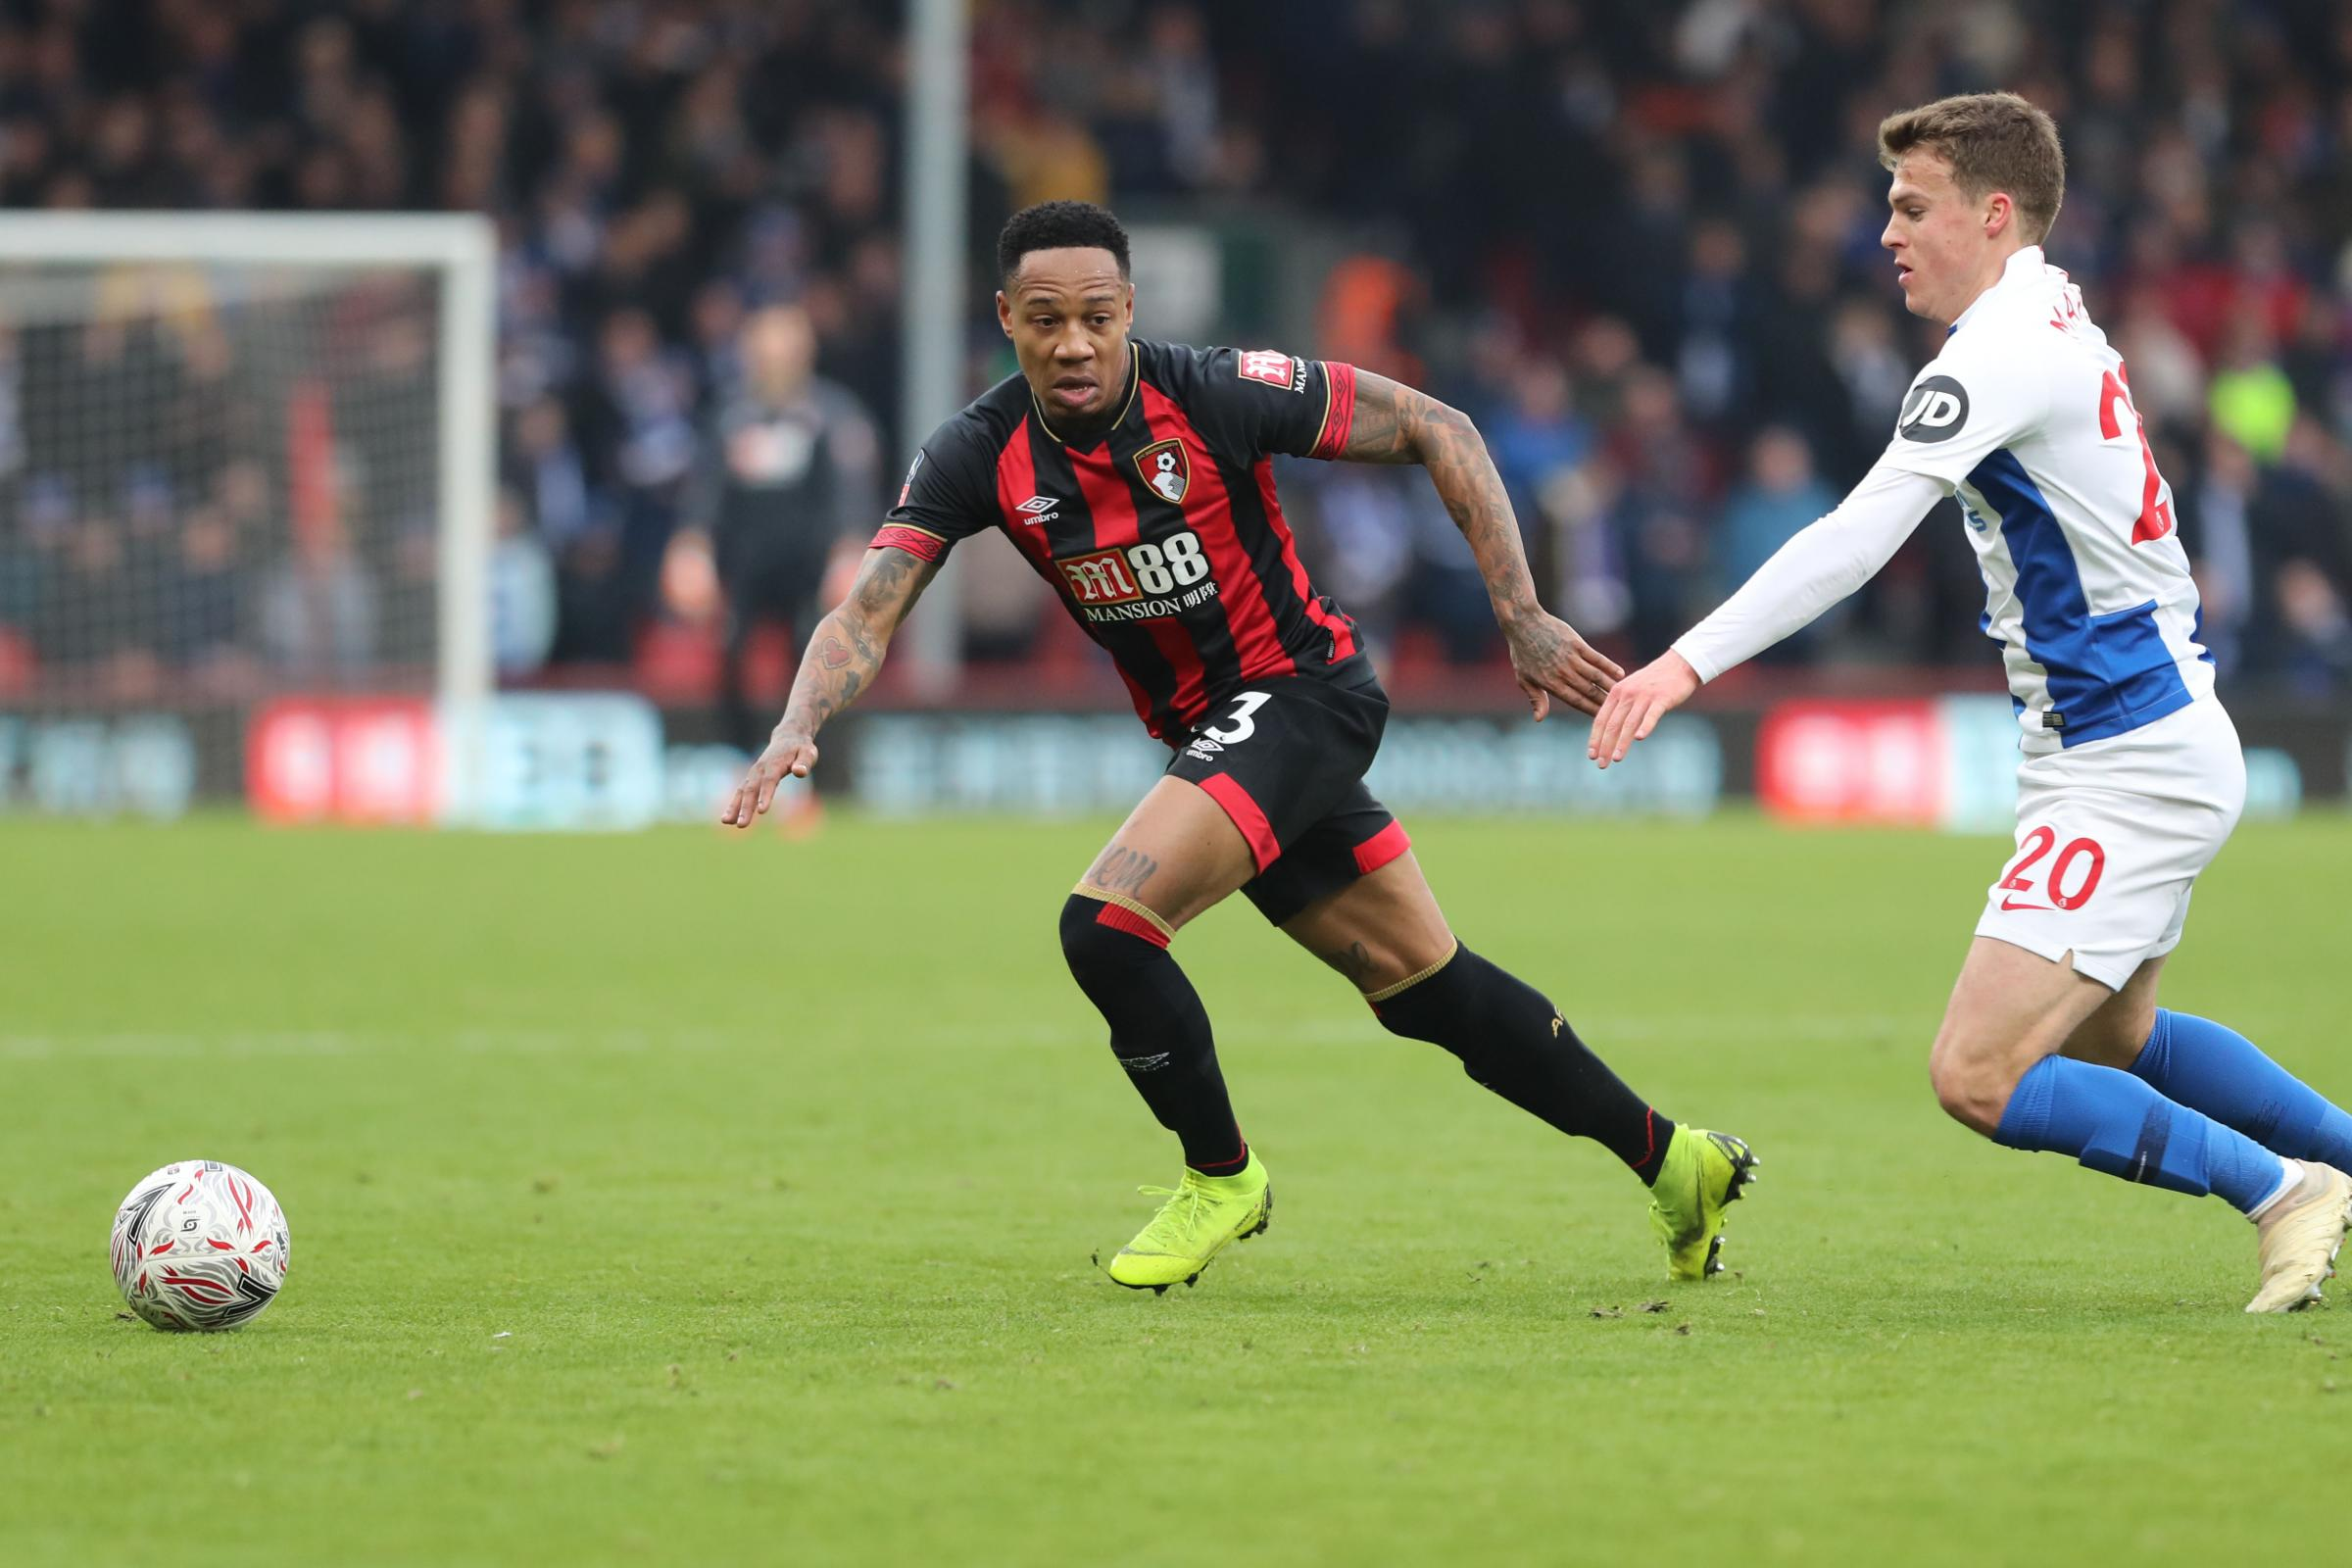 Liverpool cannot recall Clyne to cover for injured Alexander-Arnold